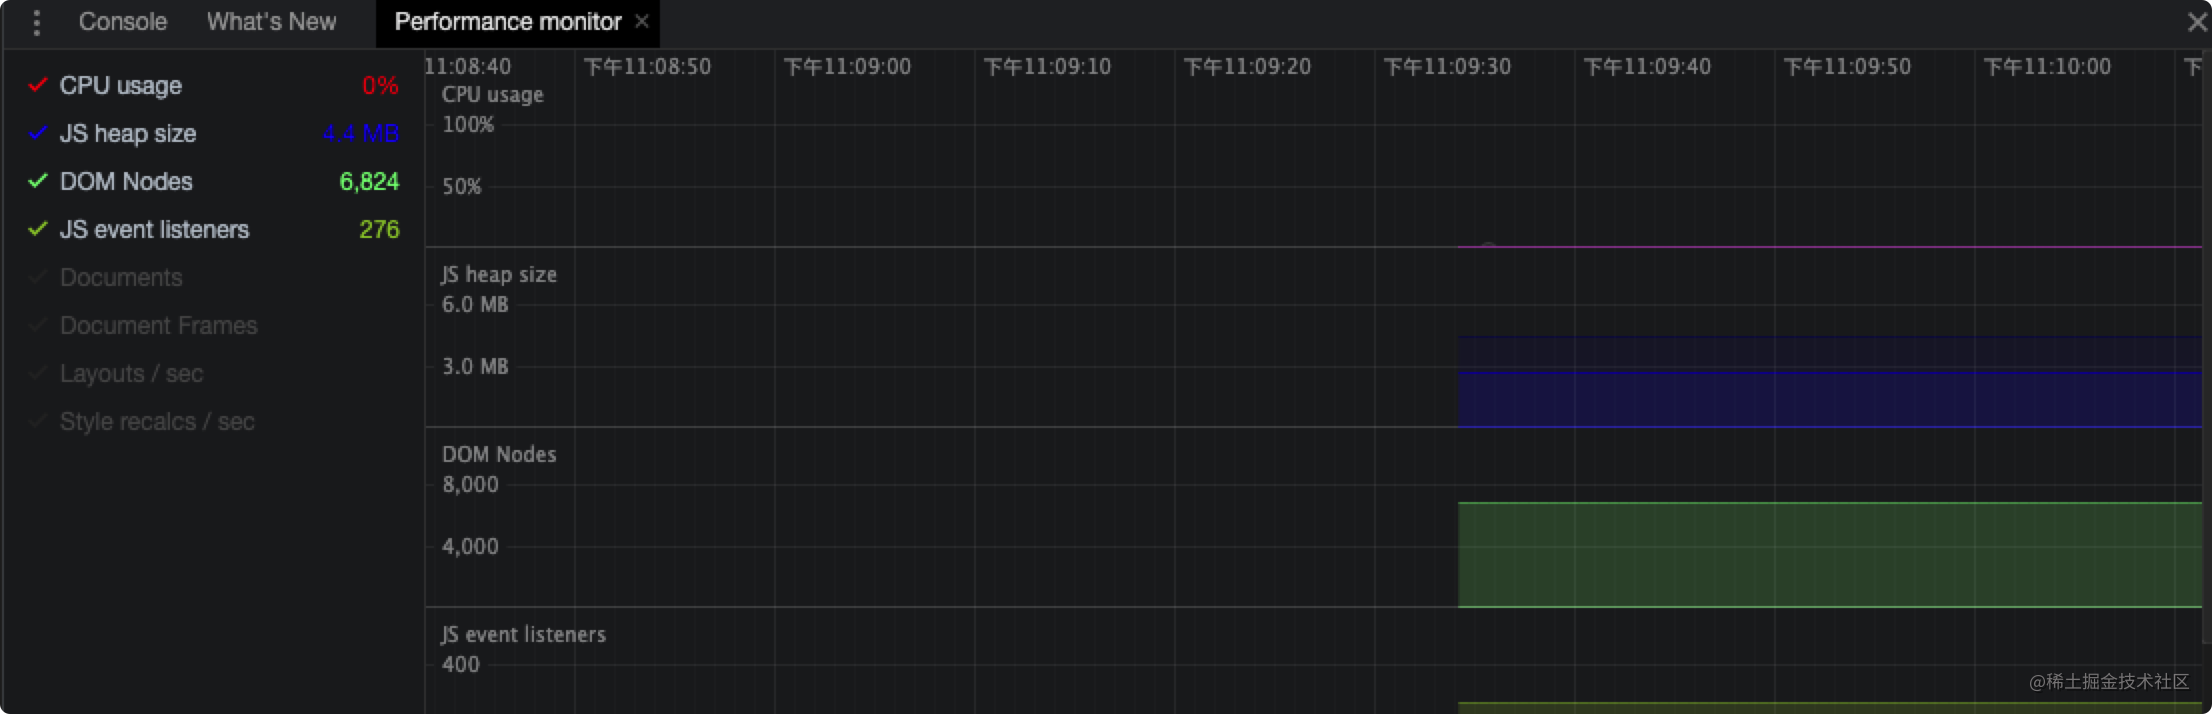 performance-monitor.png